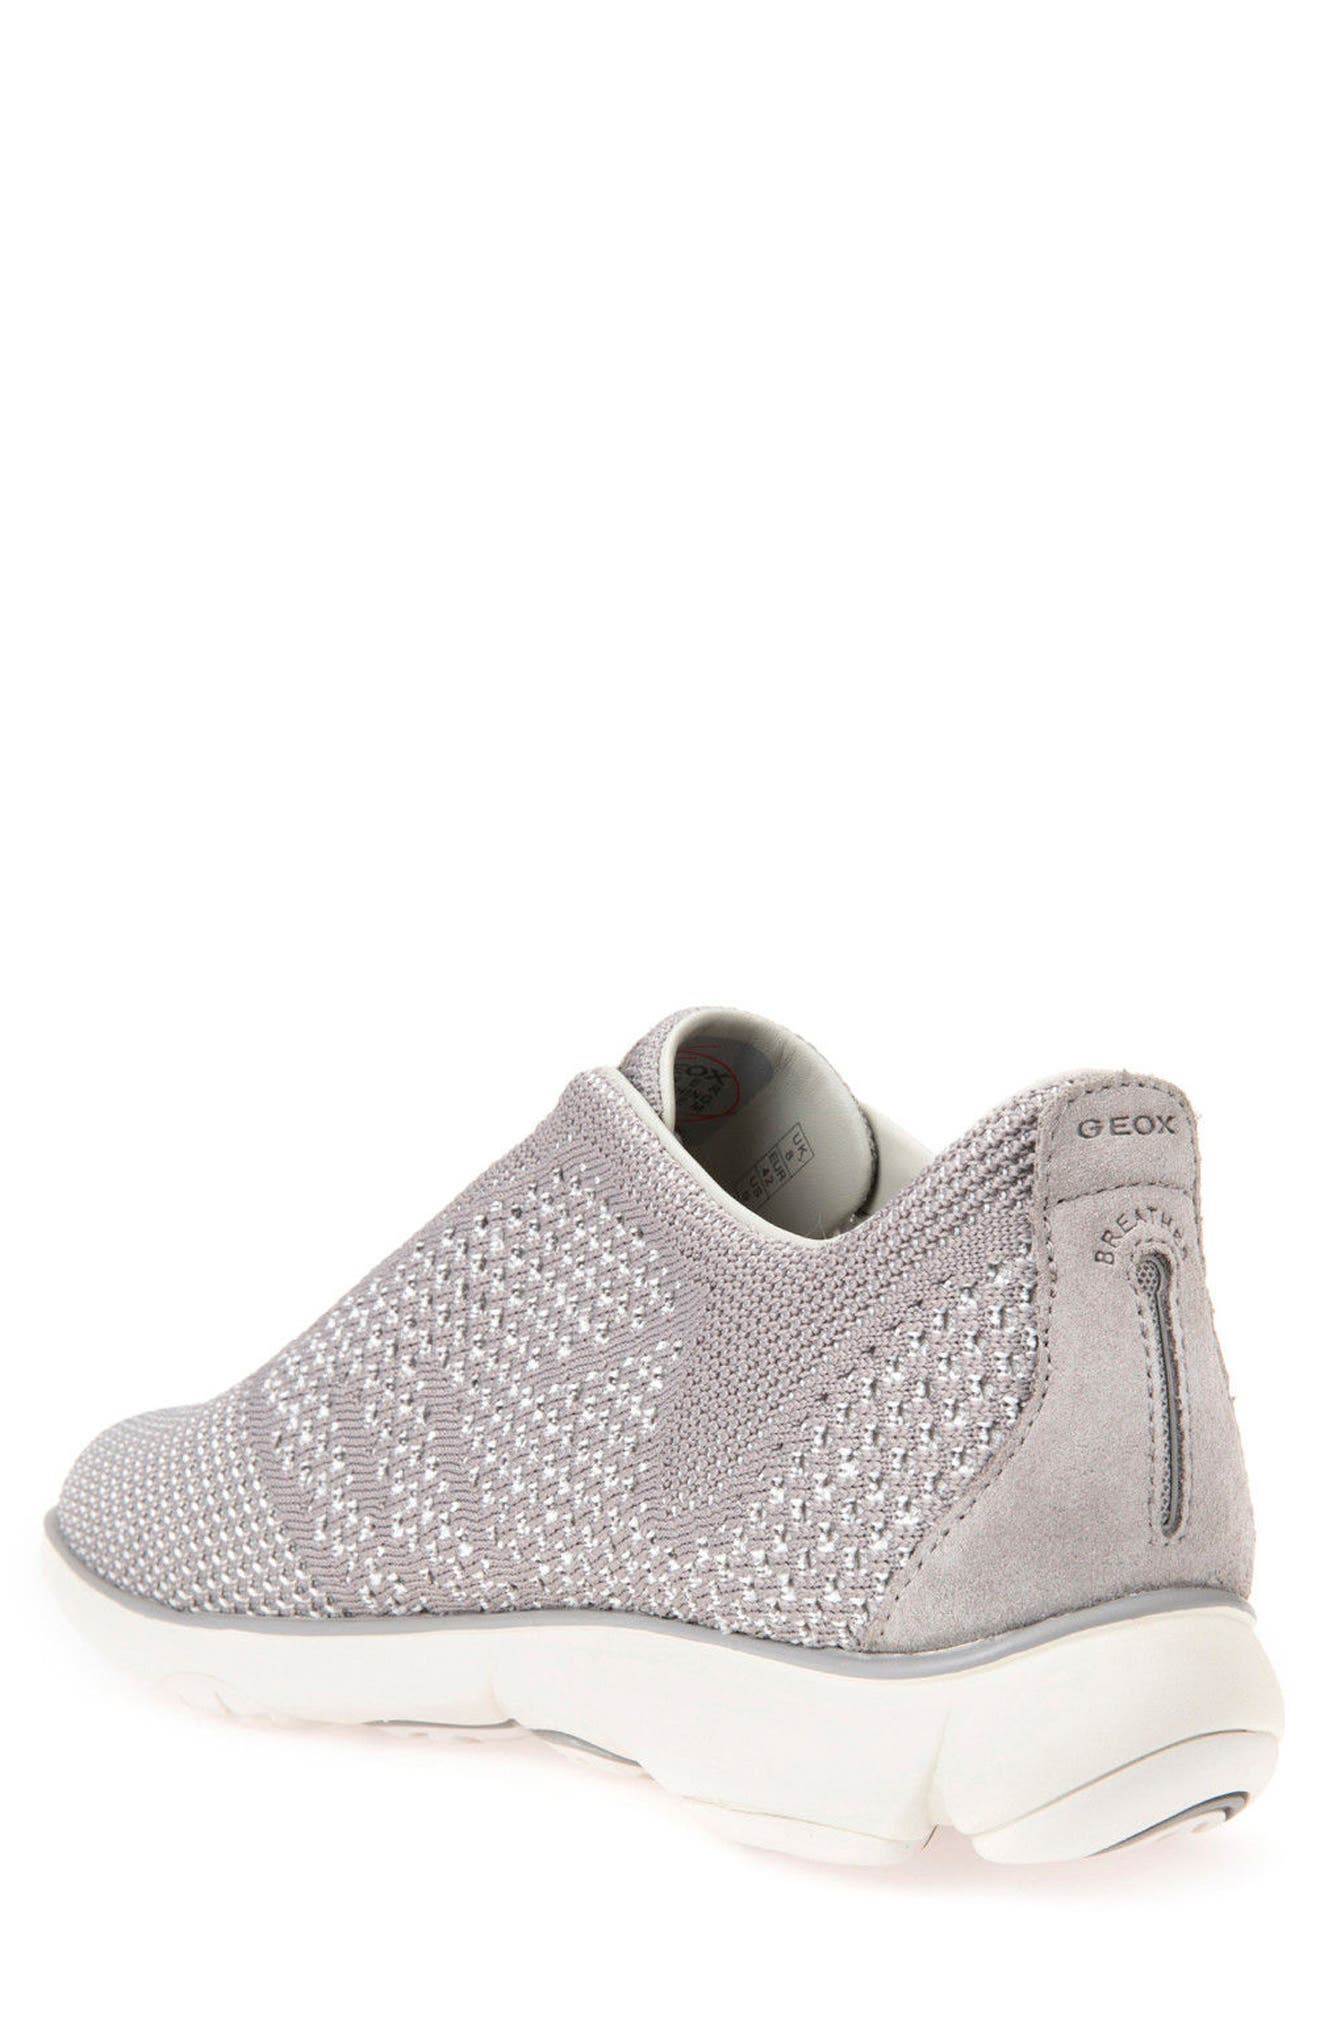 Nebula 42 Laceless Knit Sneaker,                             Alternate thumbnail 2, color,                             STONE/ WHITE